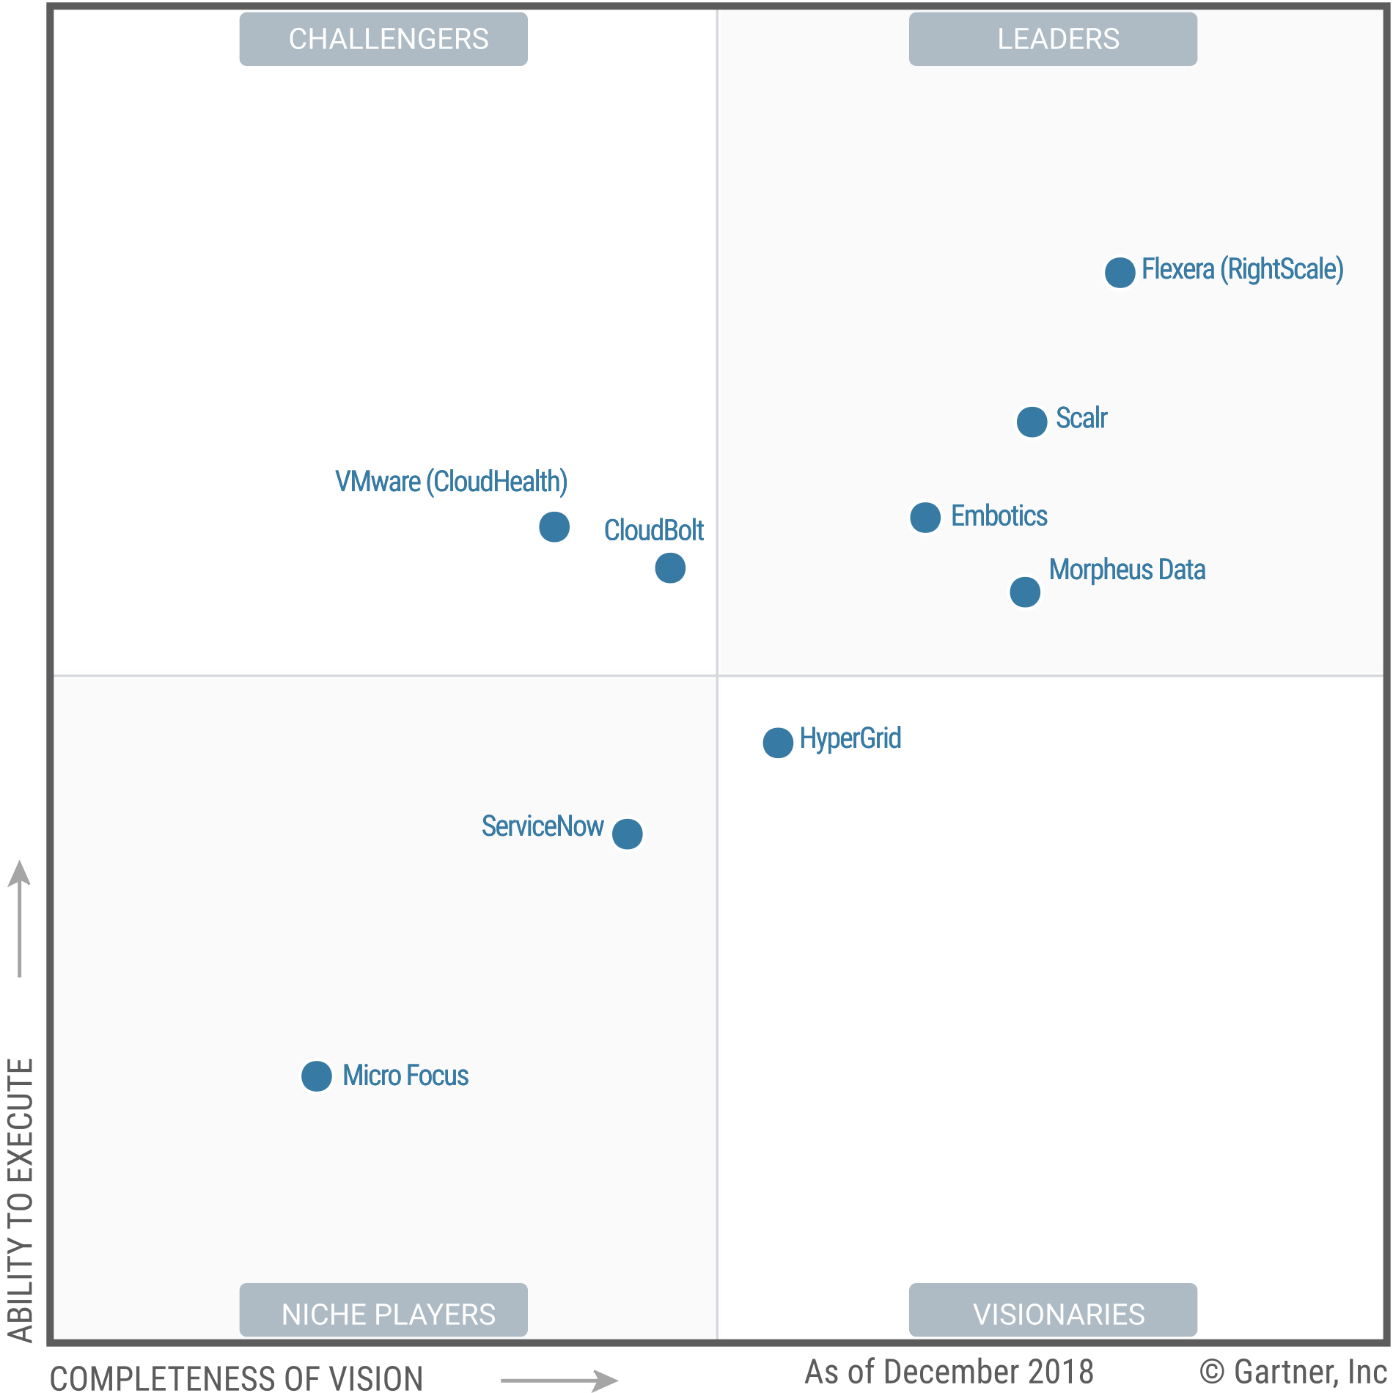 gartnermagicquadrantforcloudmanagementplatforms2019.png